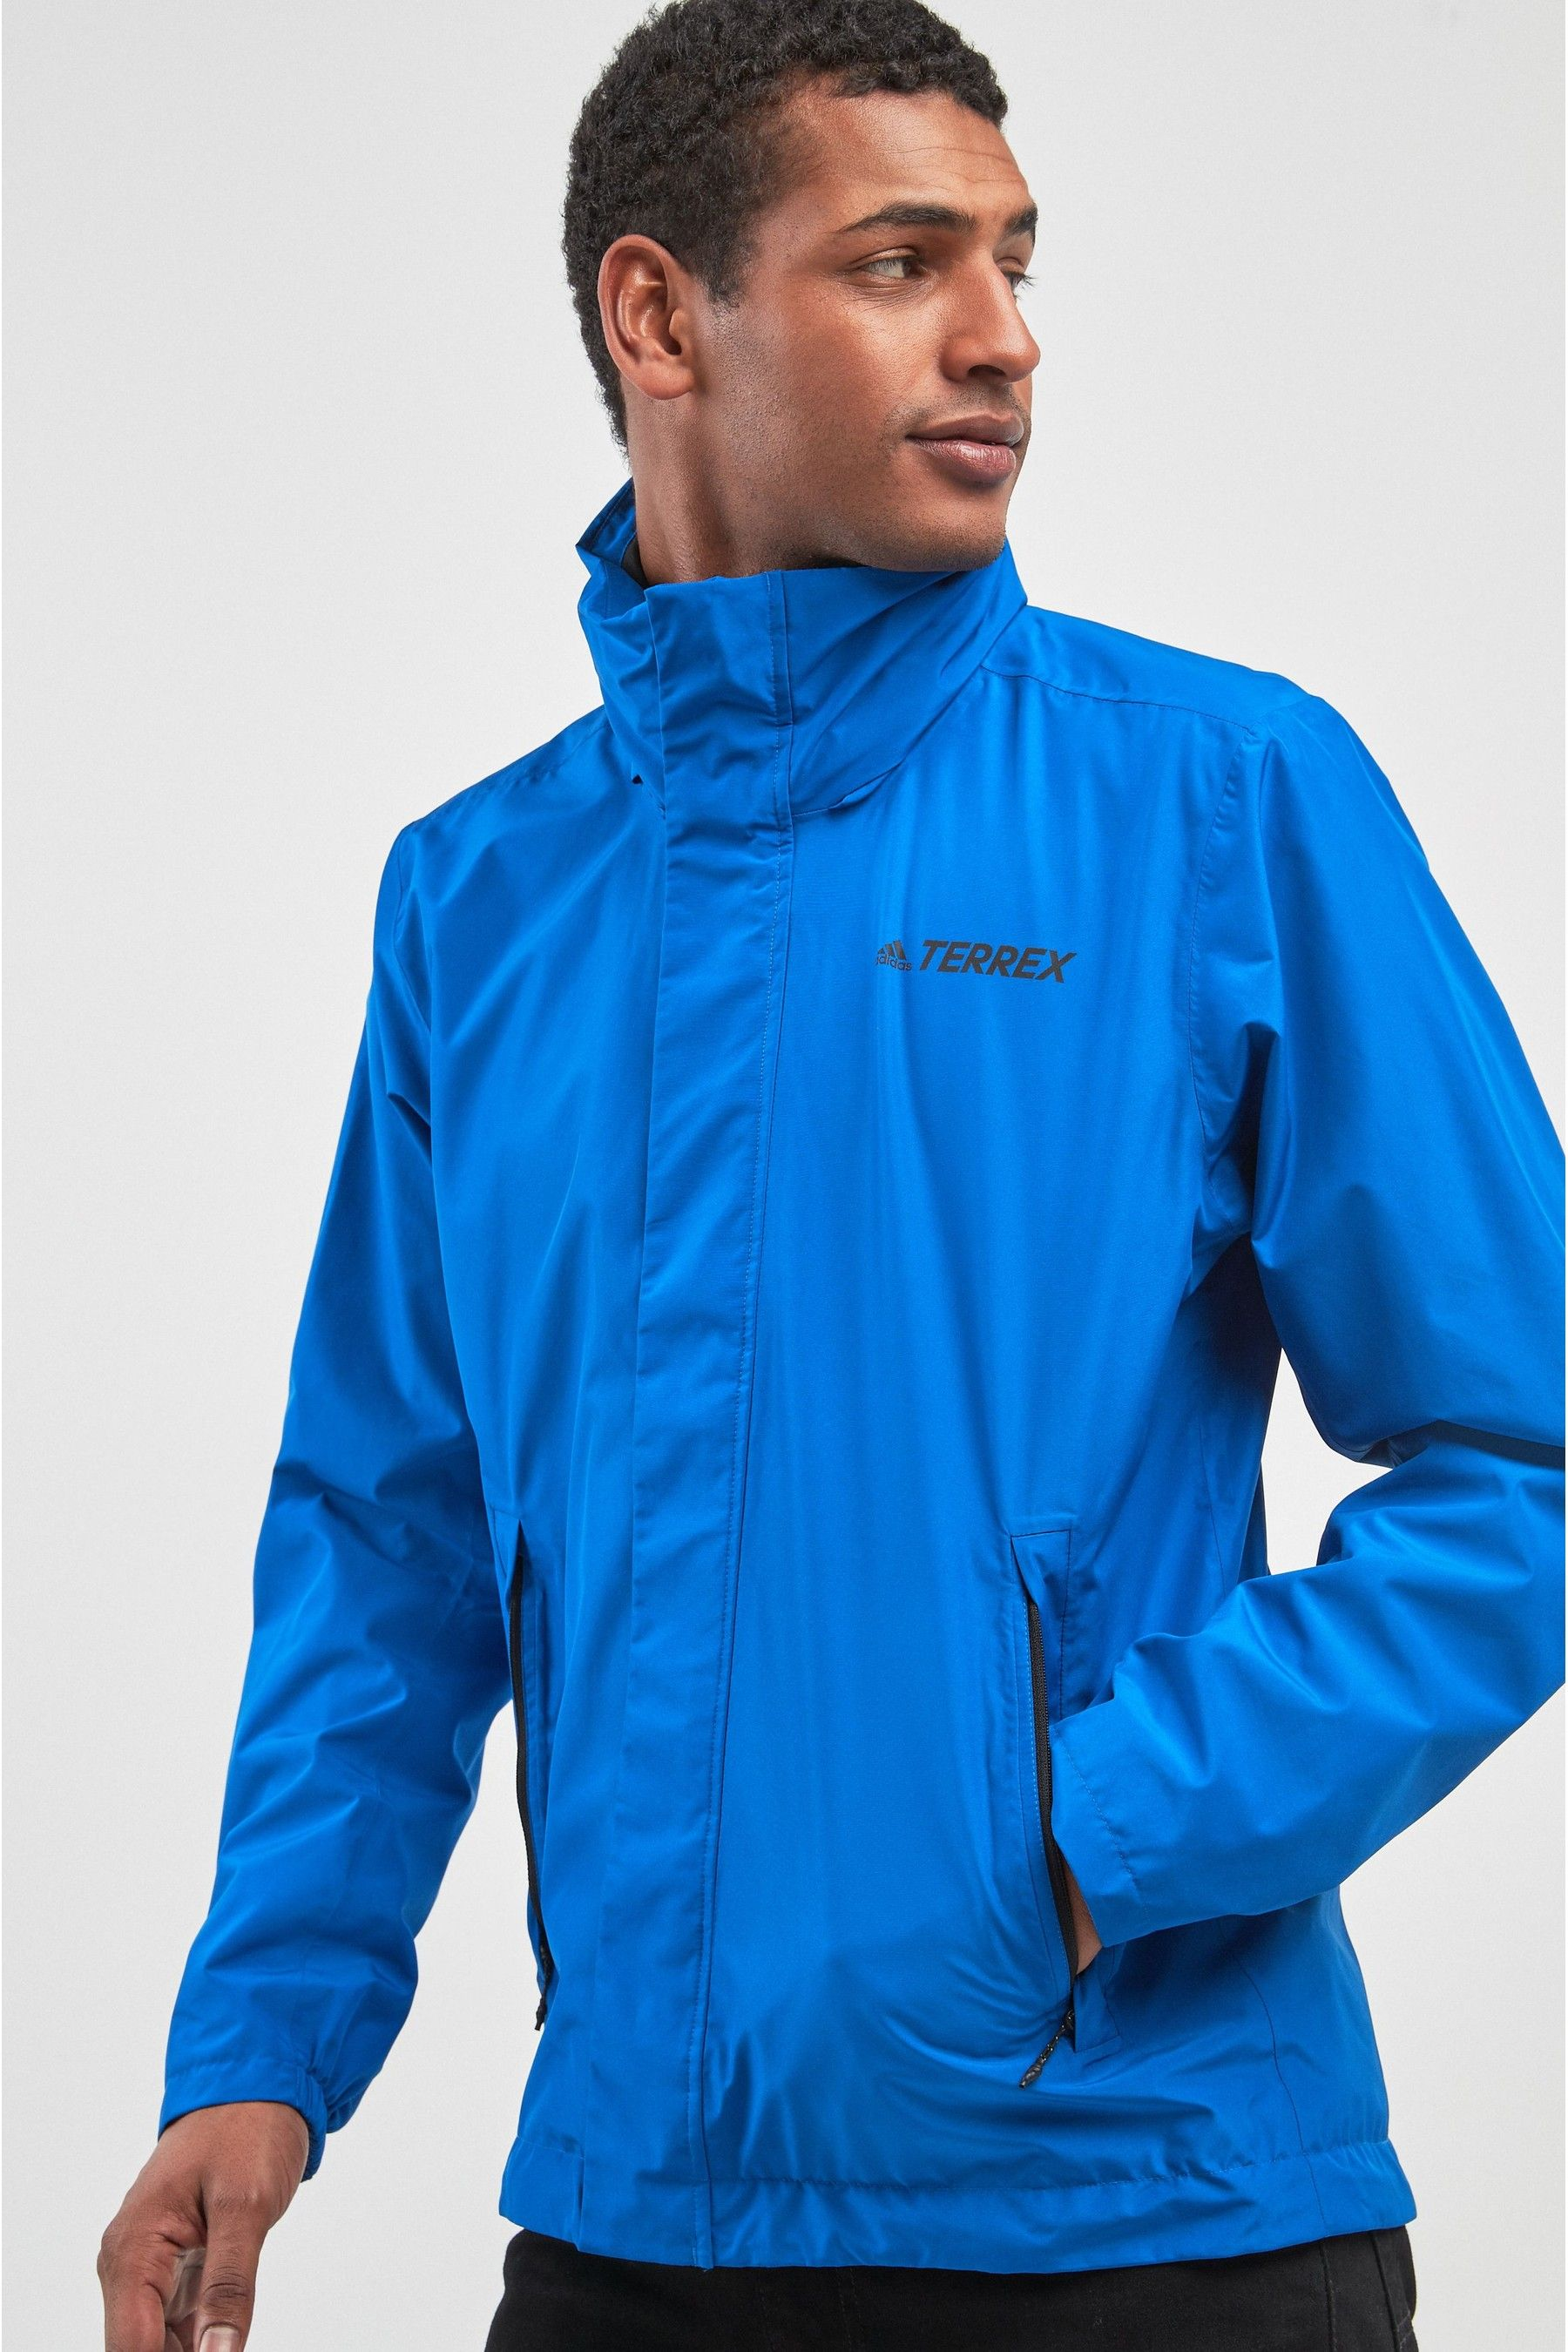 ADIDAS Men's Hooded Jacket Blue